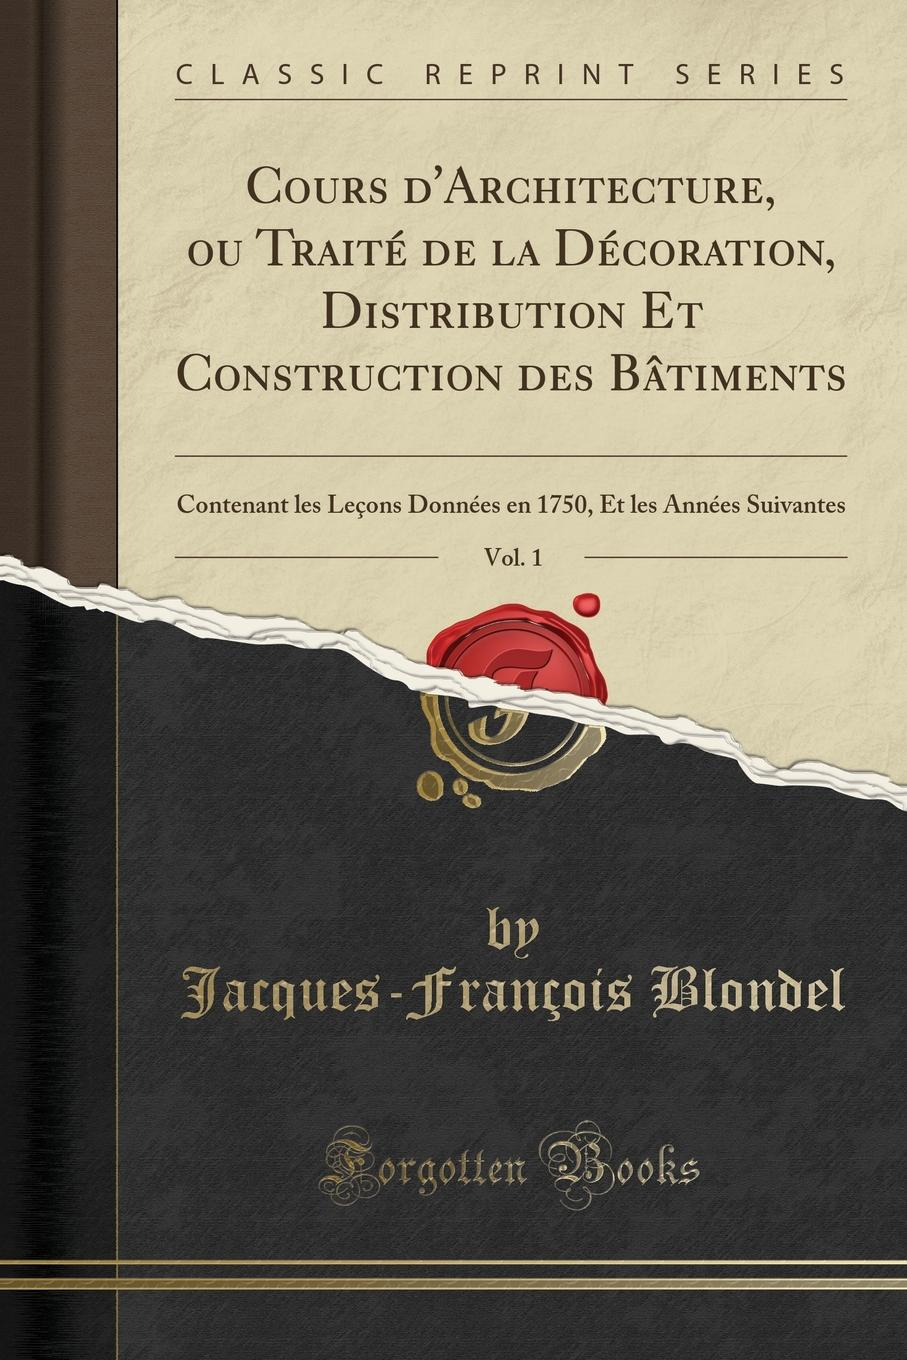 Jacques-François Blondel Cours d.Architecture, ou Traite de la Decoration, Distribution Et Construction des Batiments, Vol. 1. Contenant les Lecons Donnees en 1750, Et les Annees Suivantes (Classic Reprint) цена